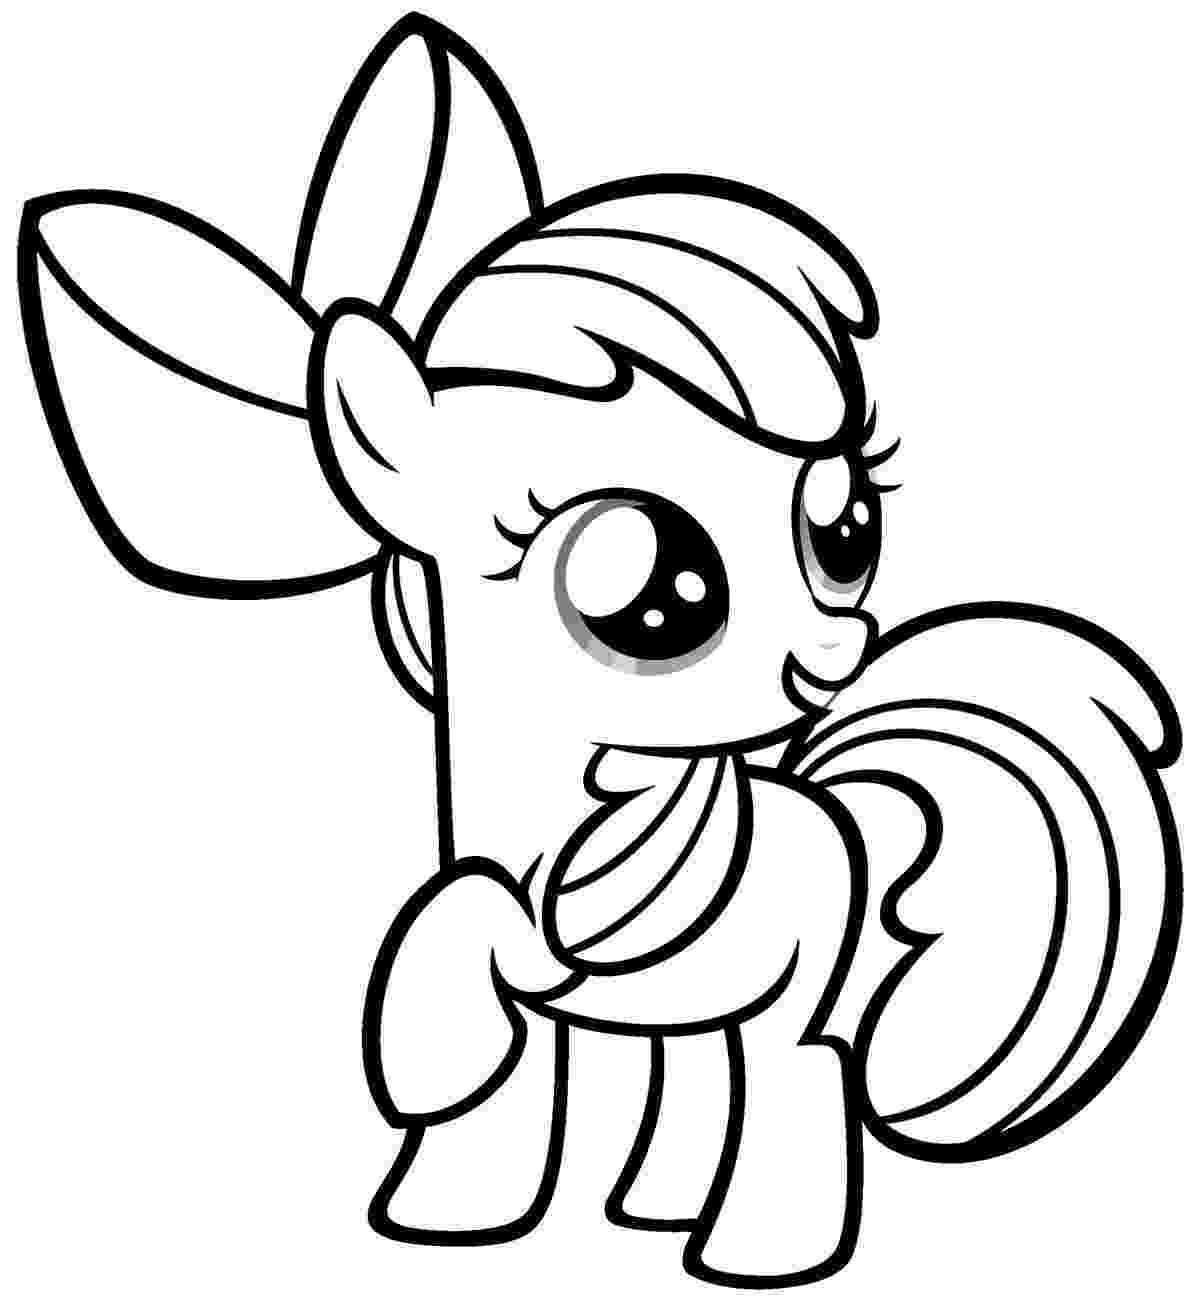 my little pony picters rainbow dash coloring page clipart panda free clipart picters little pony my